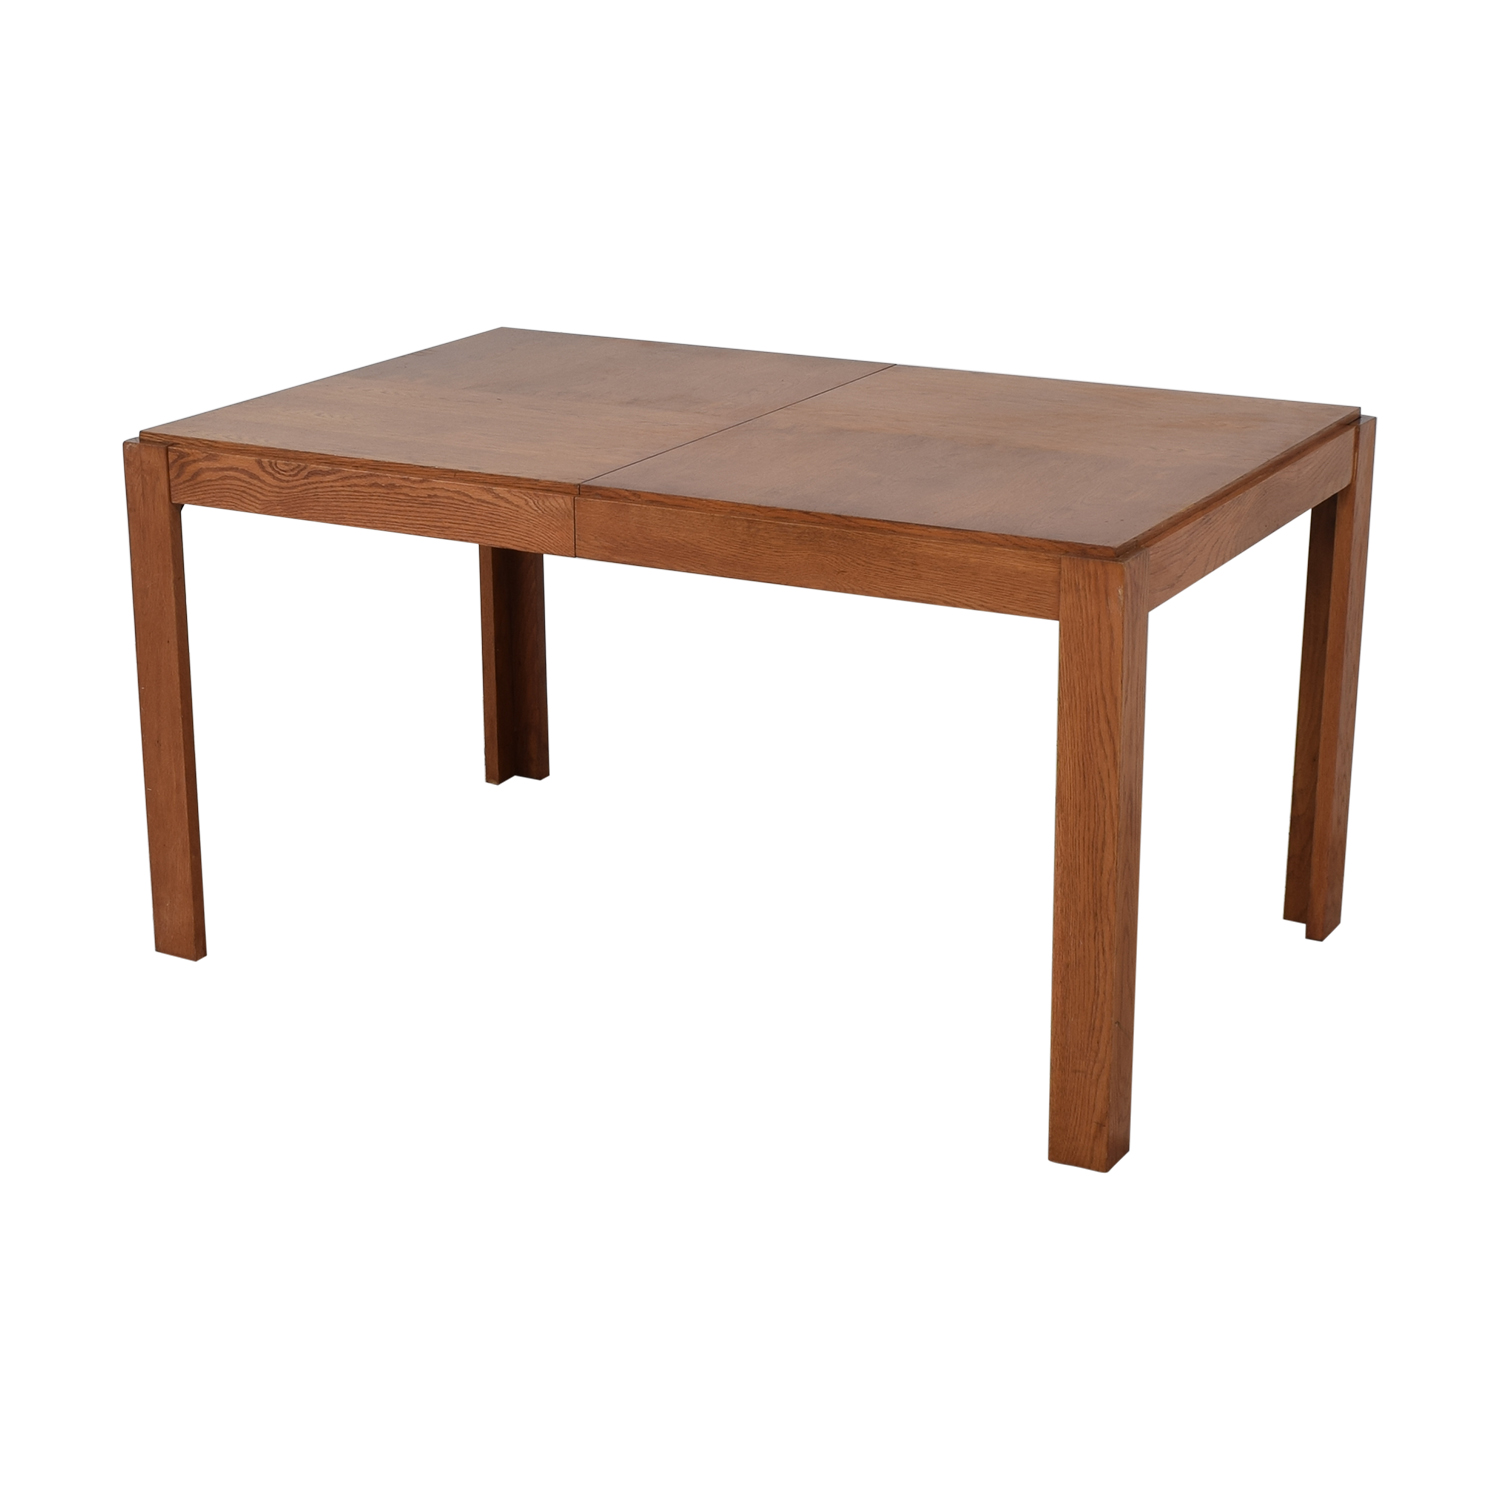 Bernhardt Bernhardt Extension Dining Table used